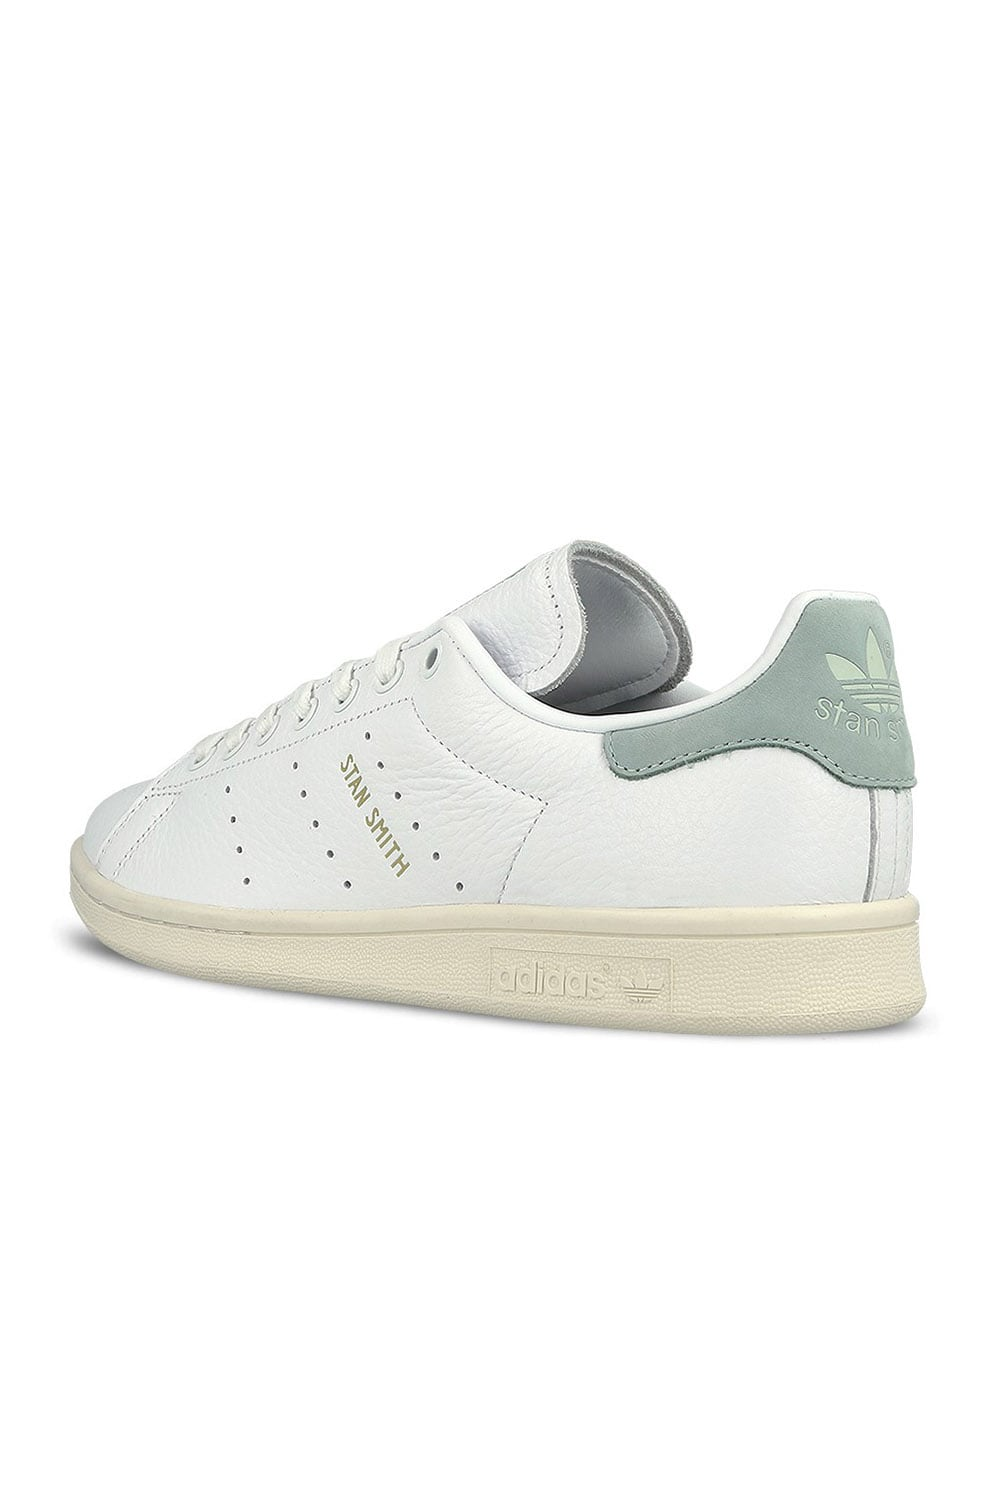 separation shoes 26516 0cf77 Adidas Stan Smith - BZ0470